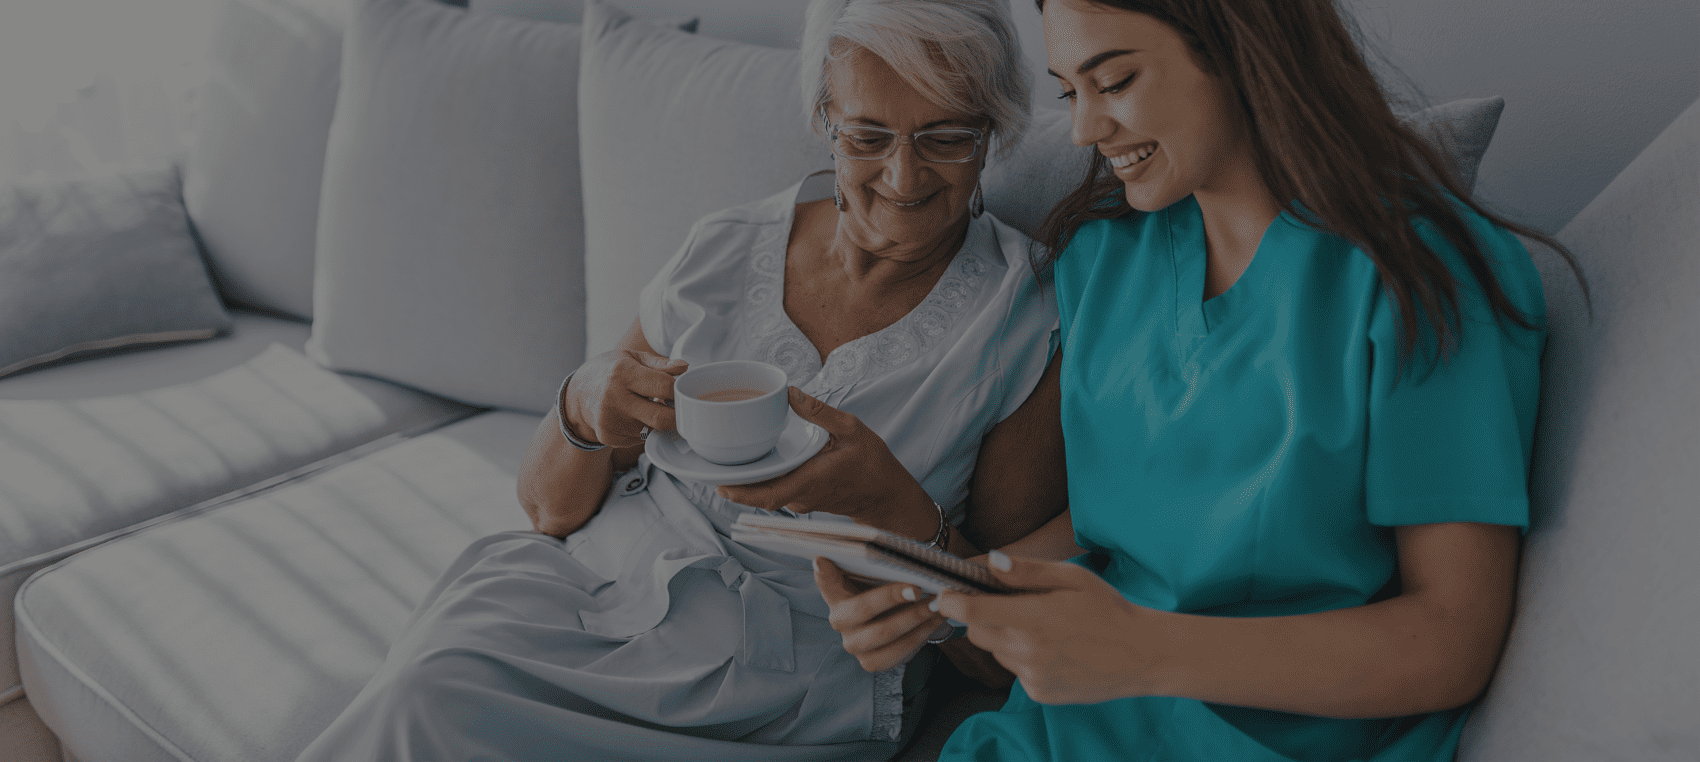 Home Health Care Makes It Possible to Remain in the Comforts of Home